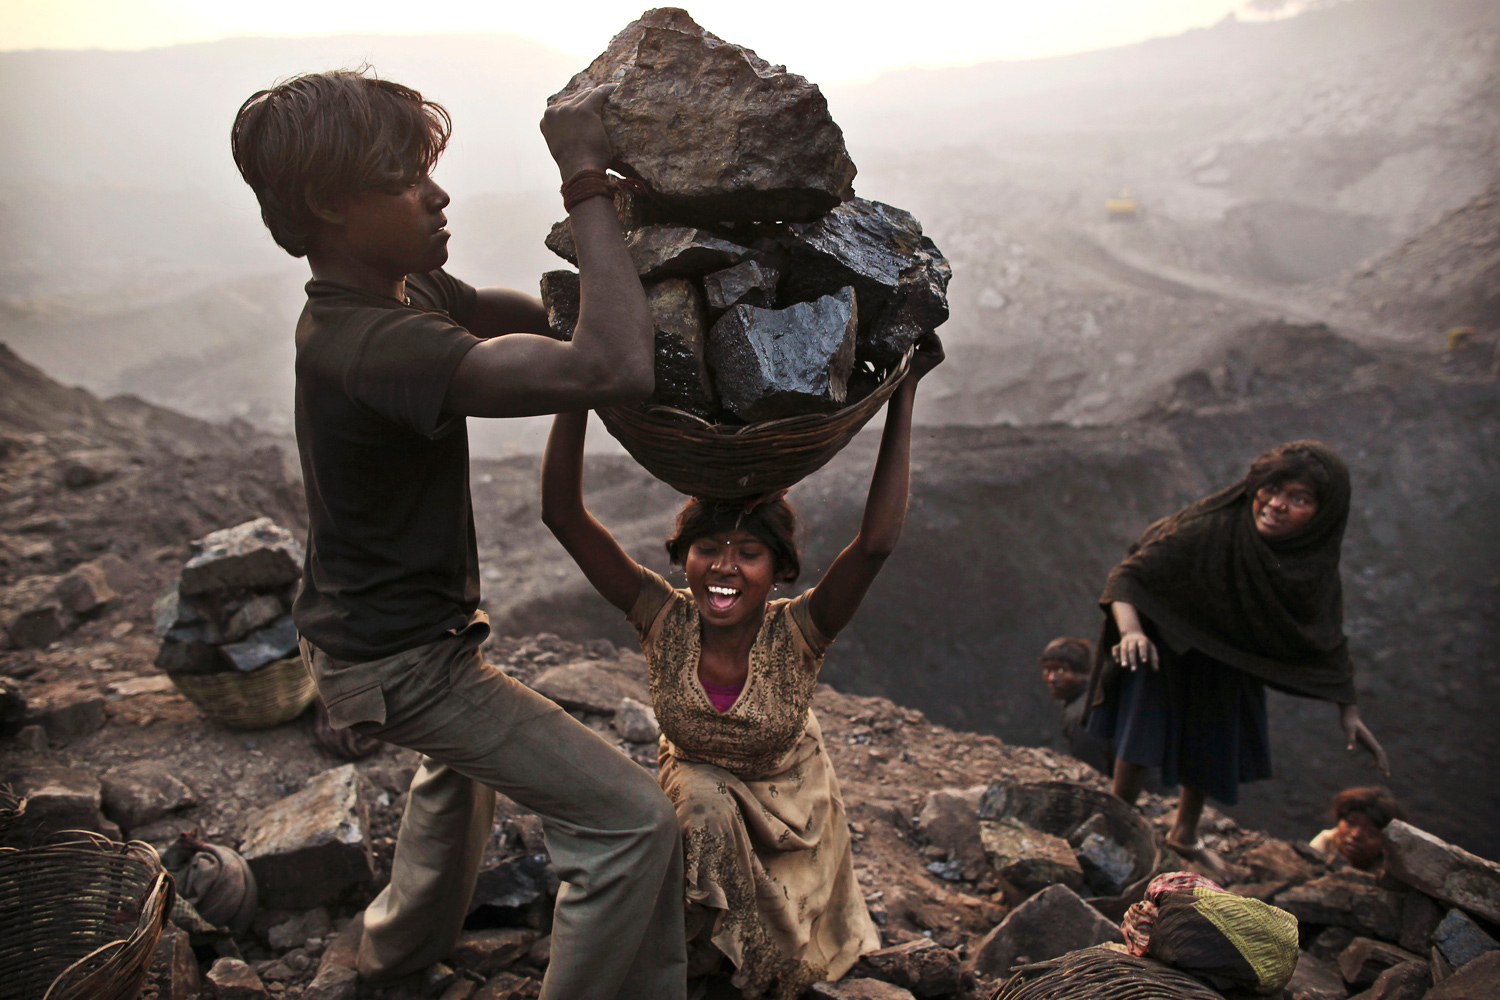 January 6, 2011. A young woman stumbles as she tries to carry a large basket of coal while illegally scavenging at an open-cast mine in Bokapahari, India.